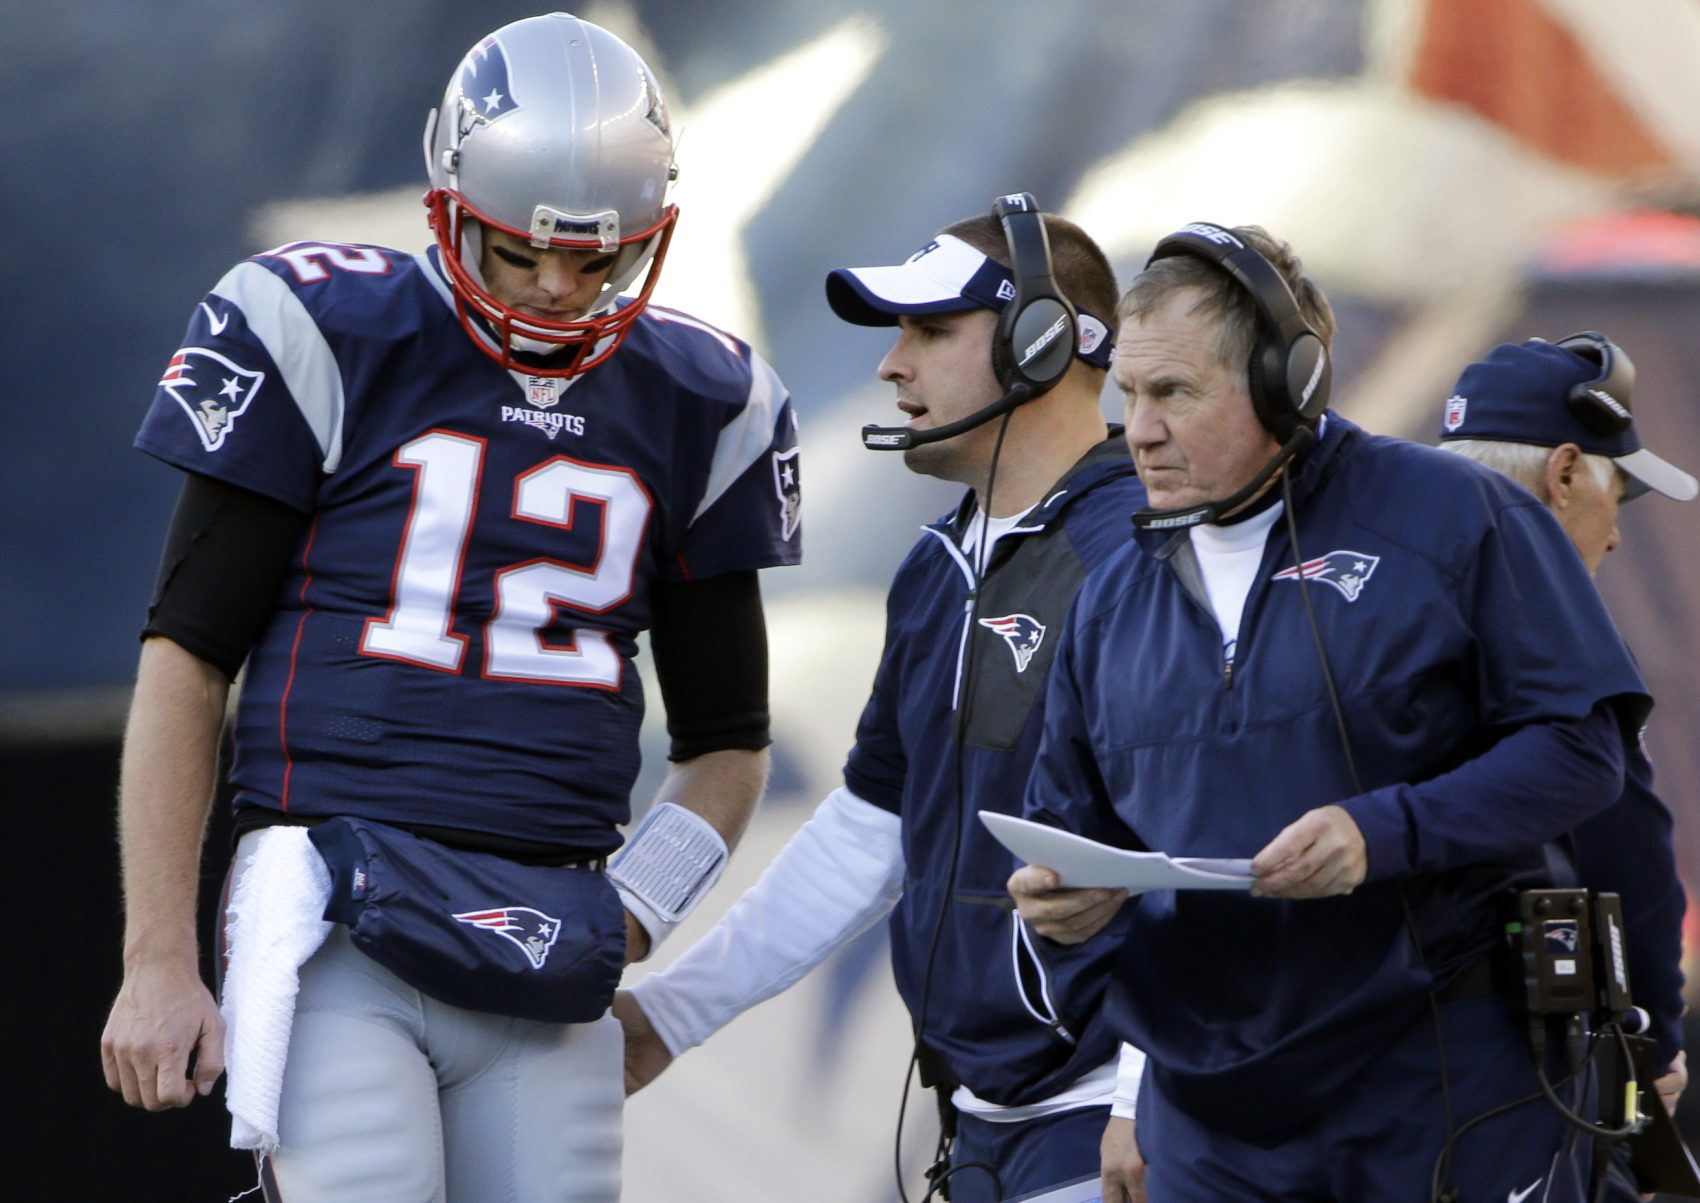 Patriots quarterback Tom Brady listens to offensive coordinator Josh McDaniels, middle, and head coach Bill Belichick during an NFL football game against the Los Angeles Rams in December. (Elise Amendola/AP)